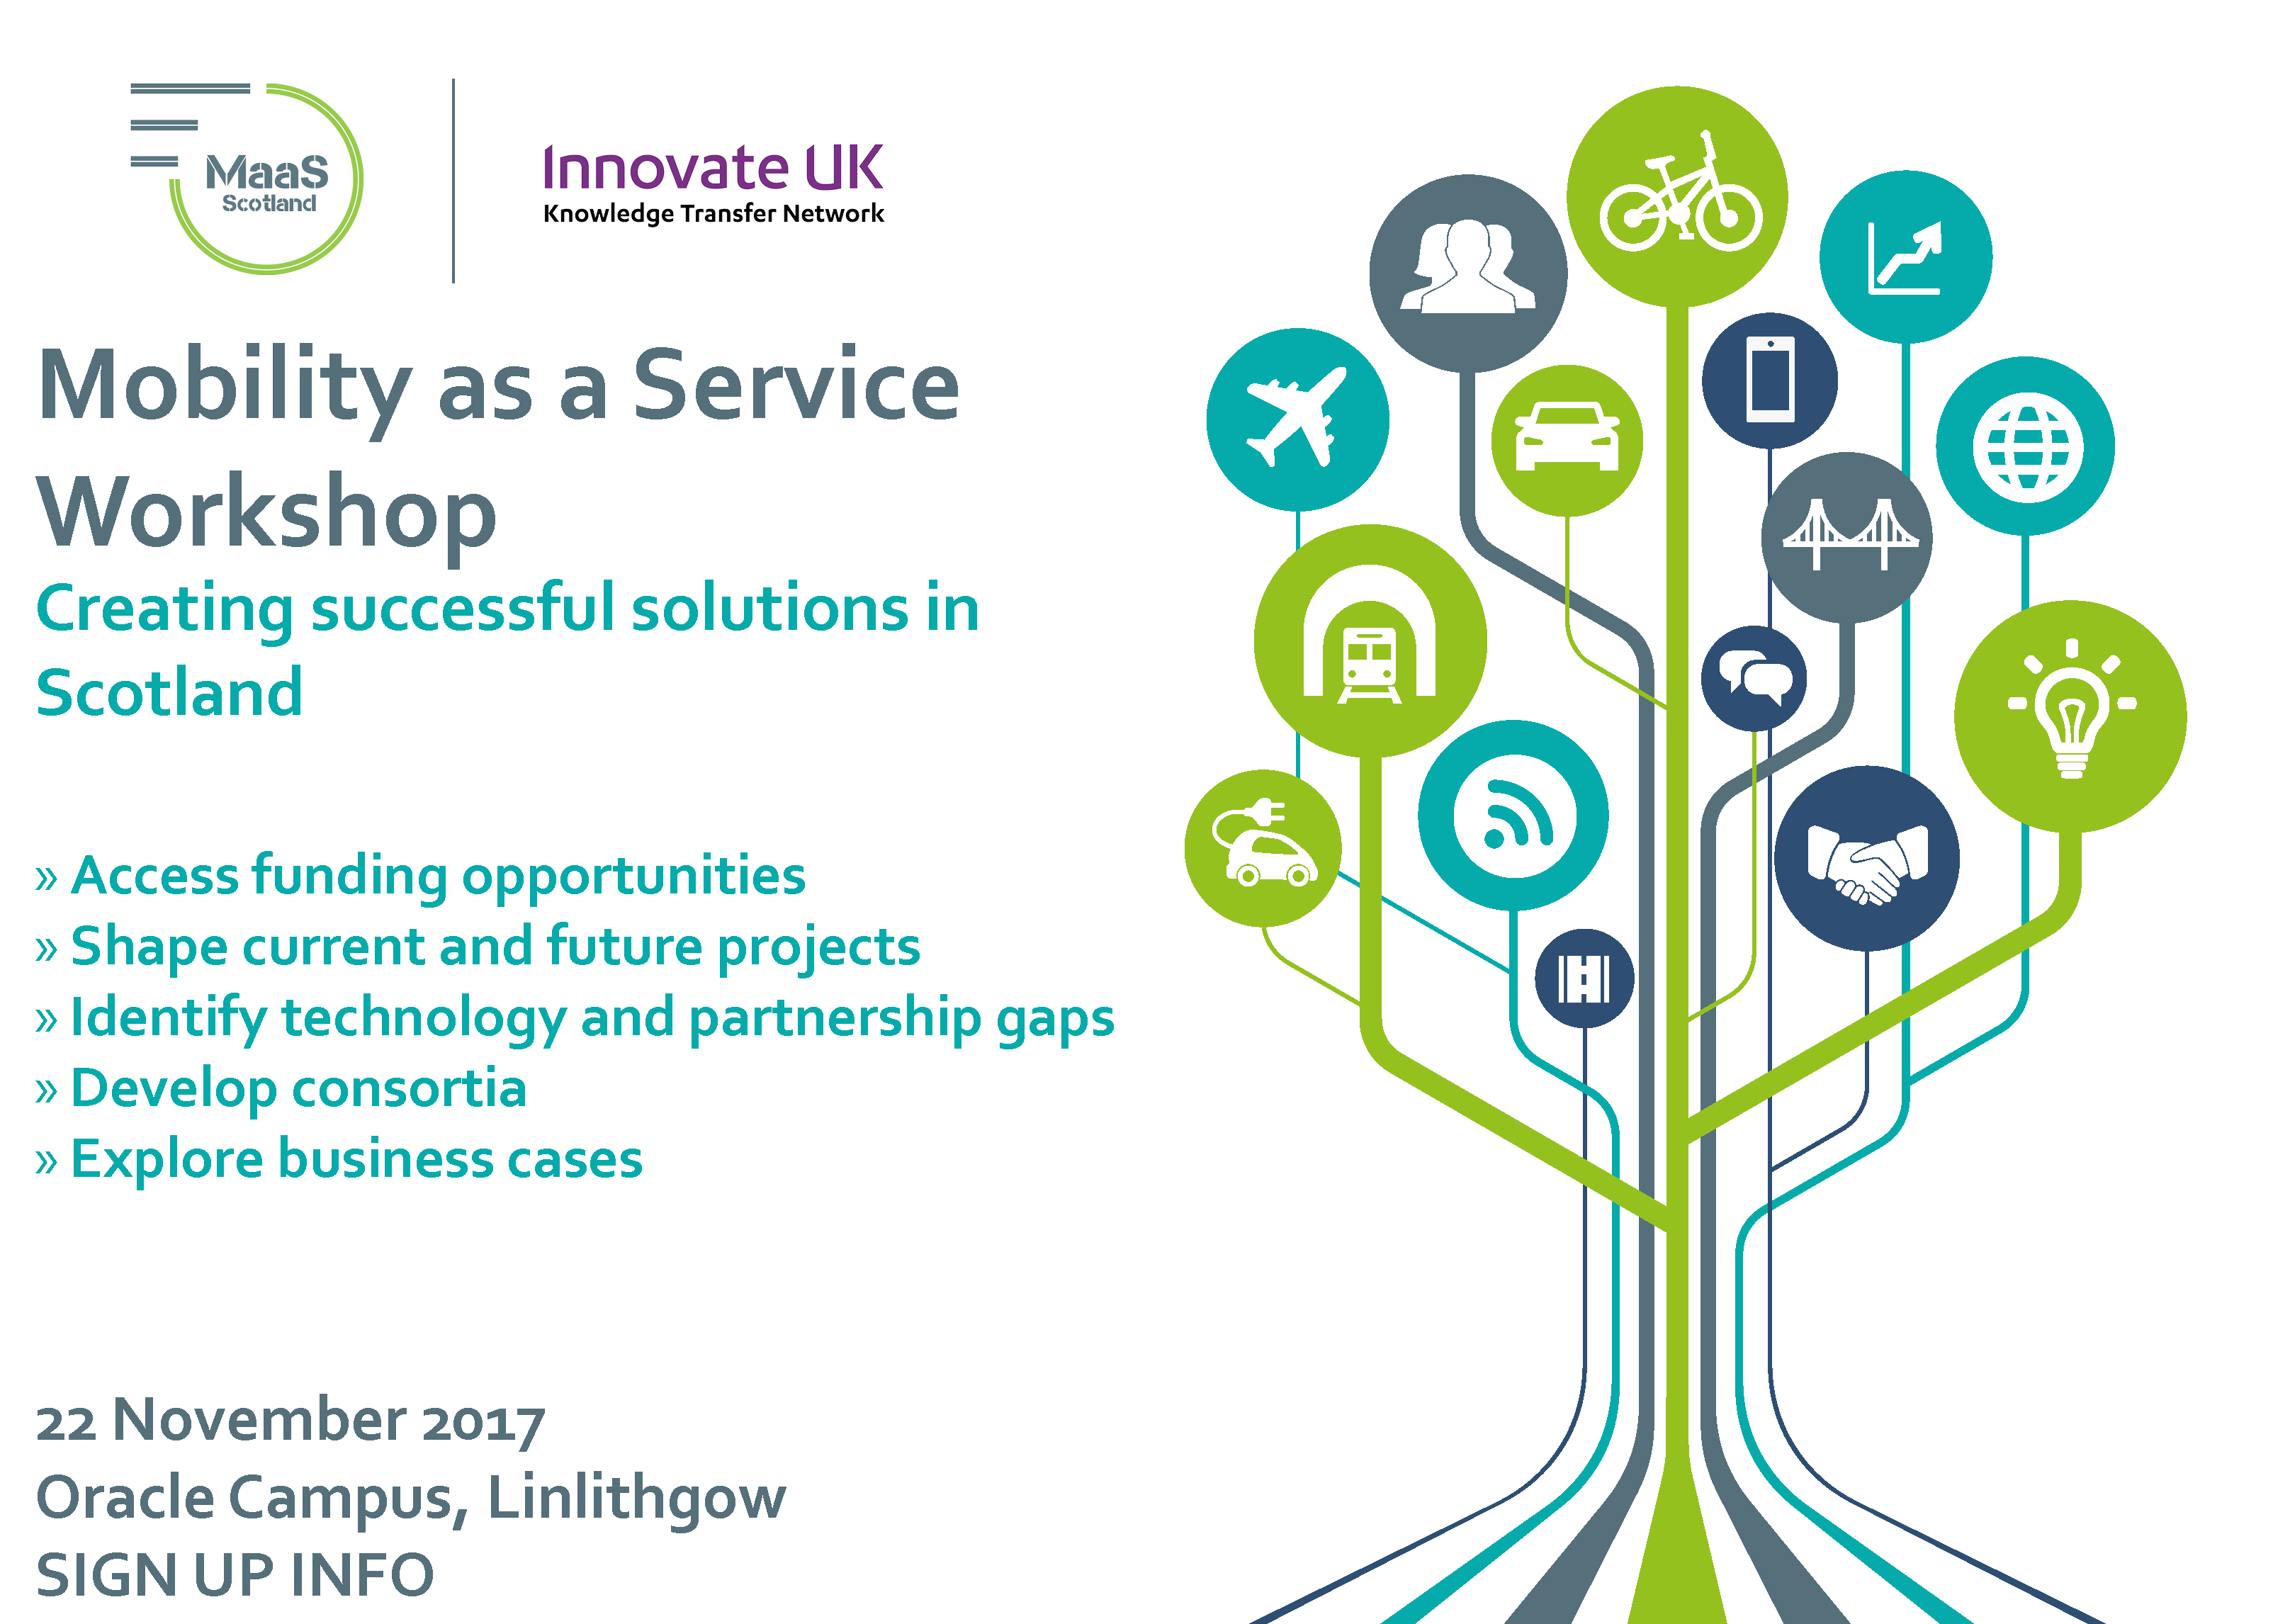 EVENT: Mobility as a Service Workshop: Creating Successful